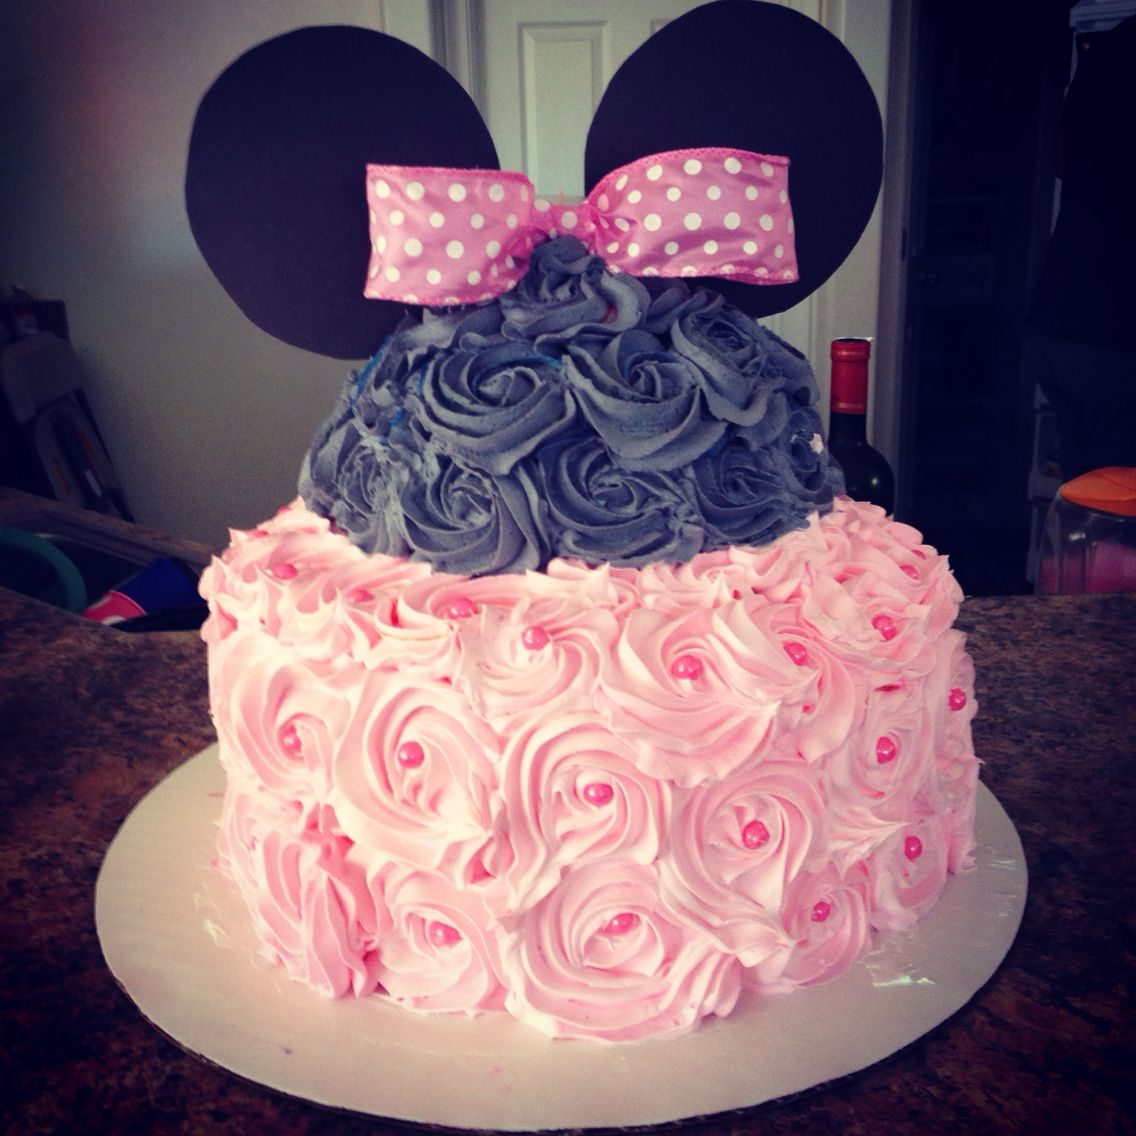 My Baby Shower Cake I Made Minnie Mouse 3 Tier Cake 2